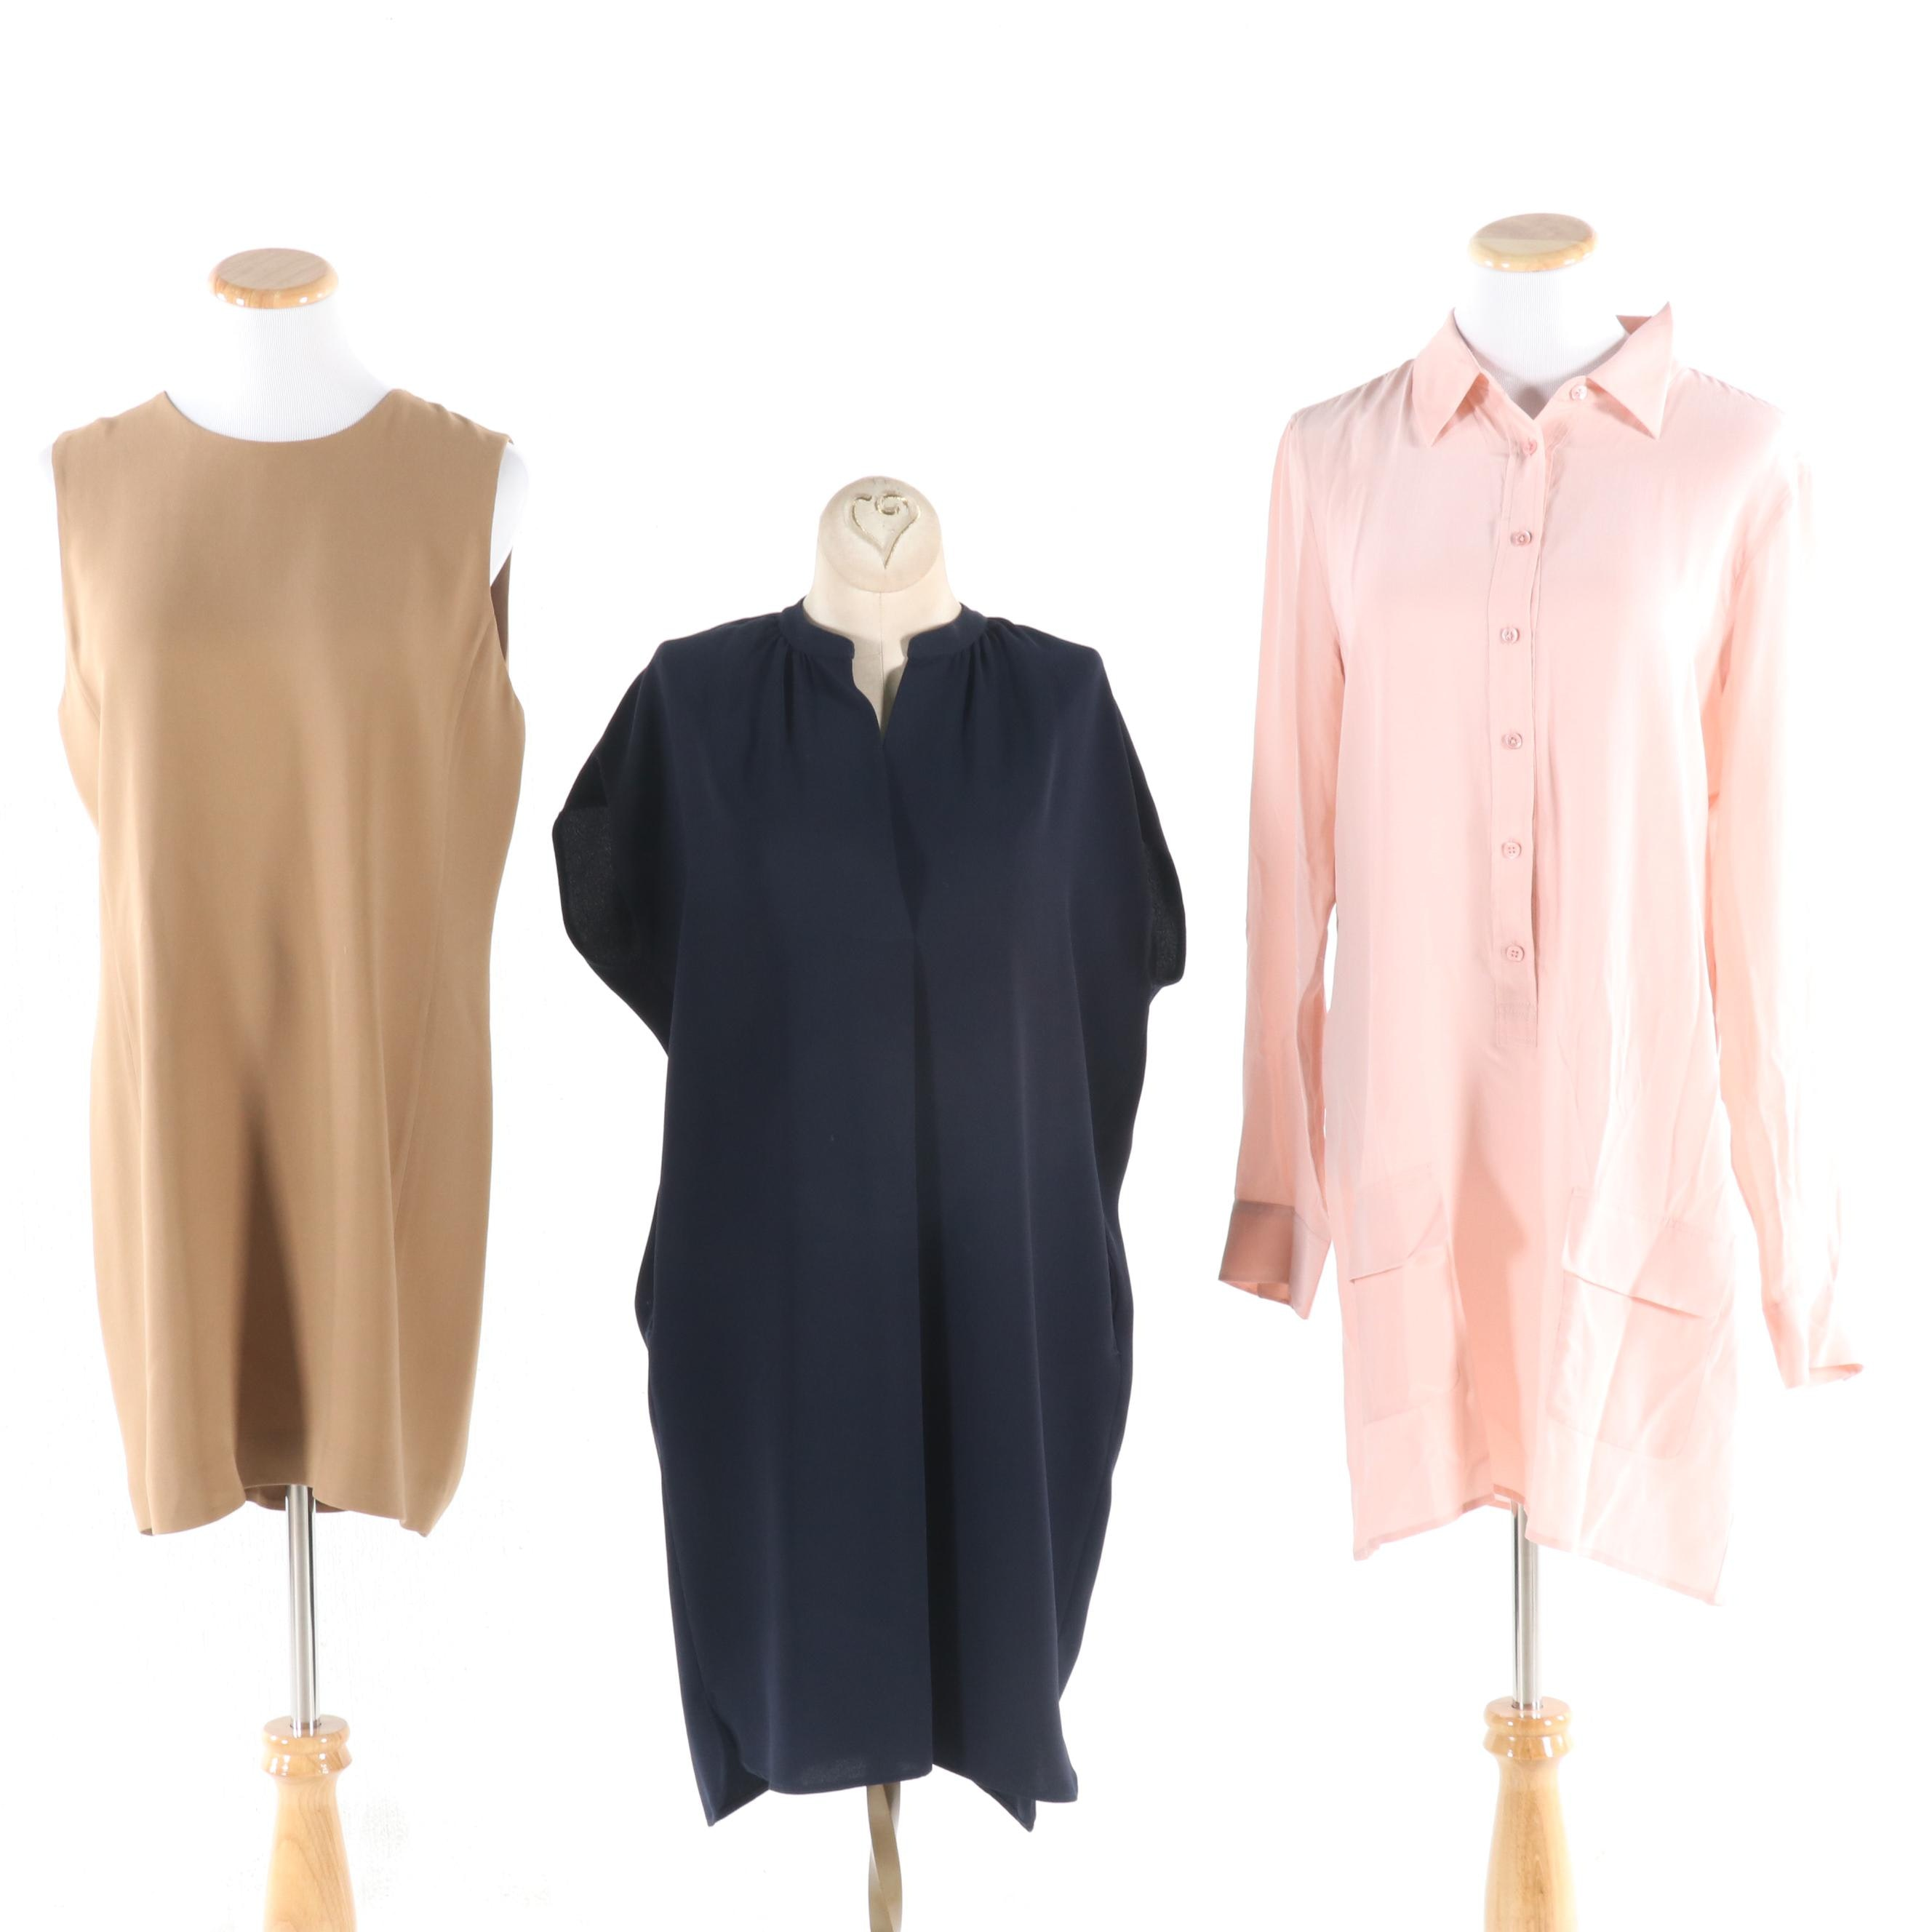 Vince and Equipment Femme Day Dresses